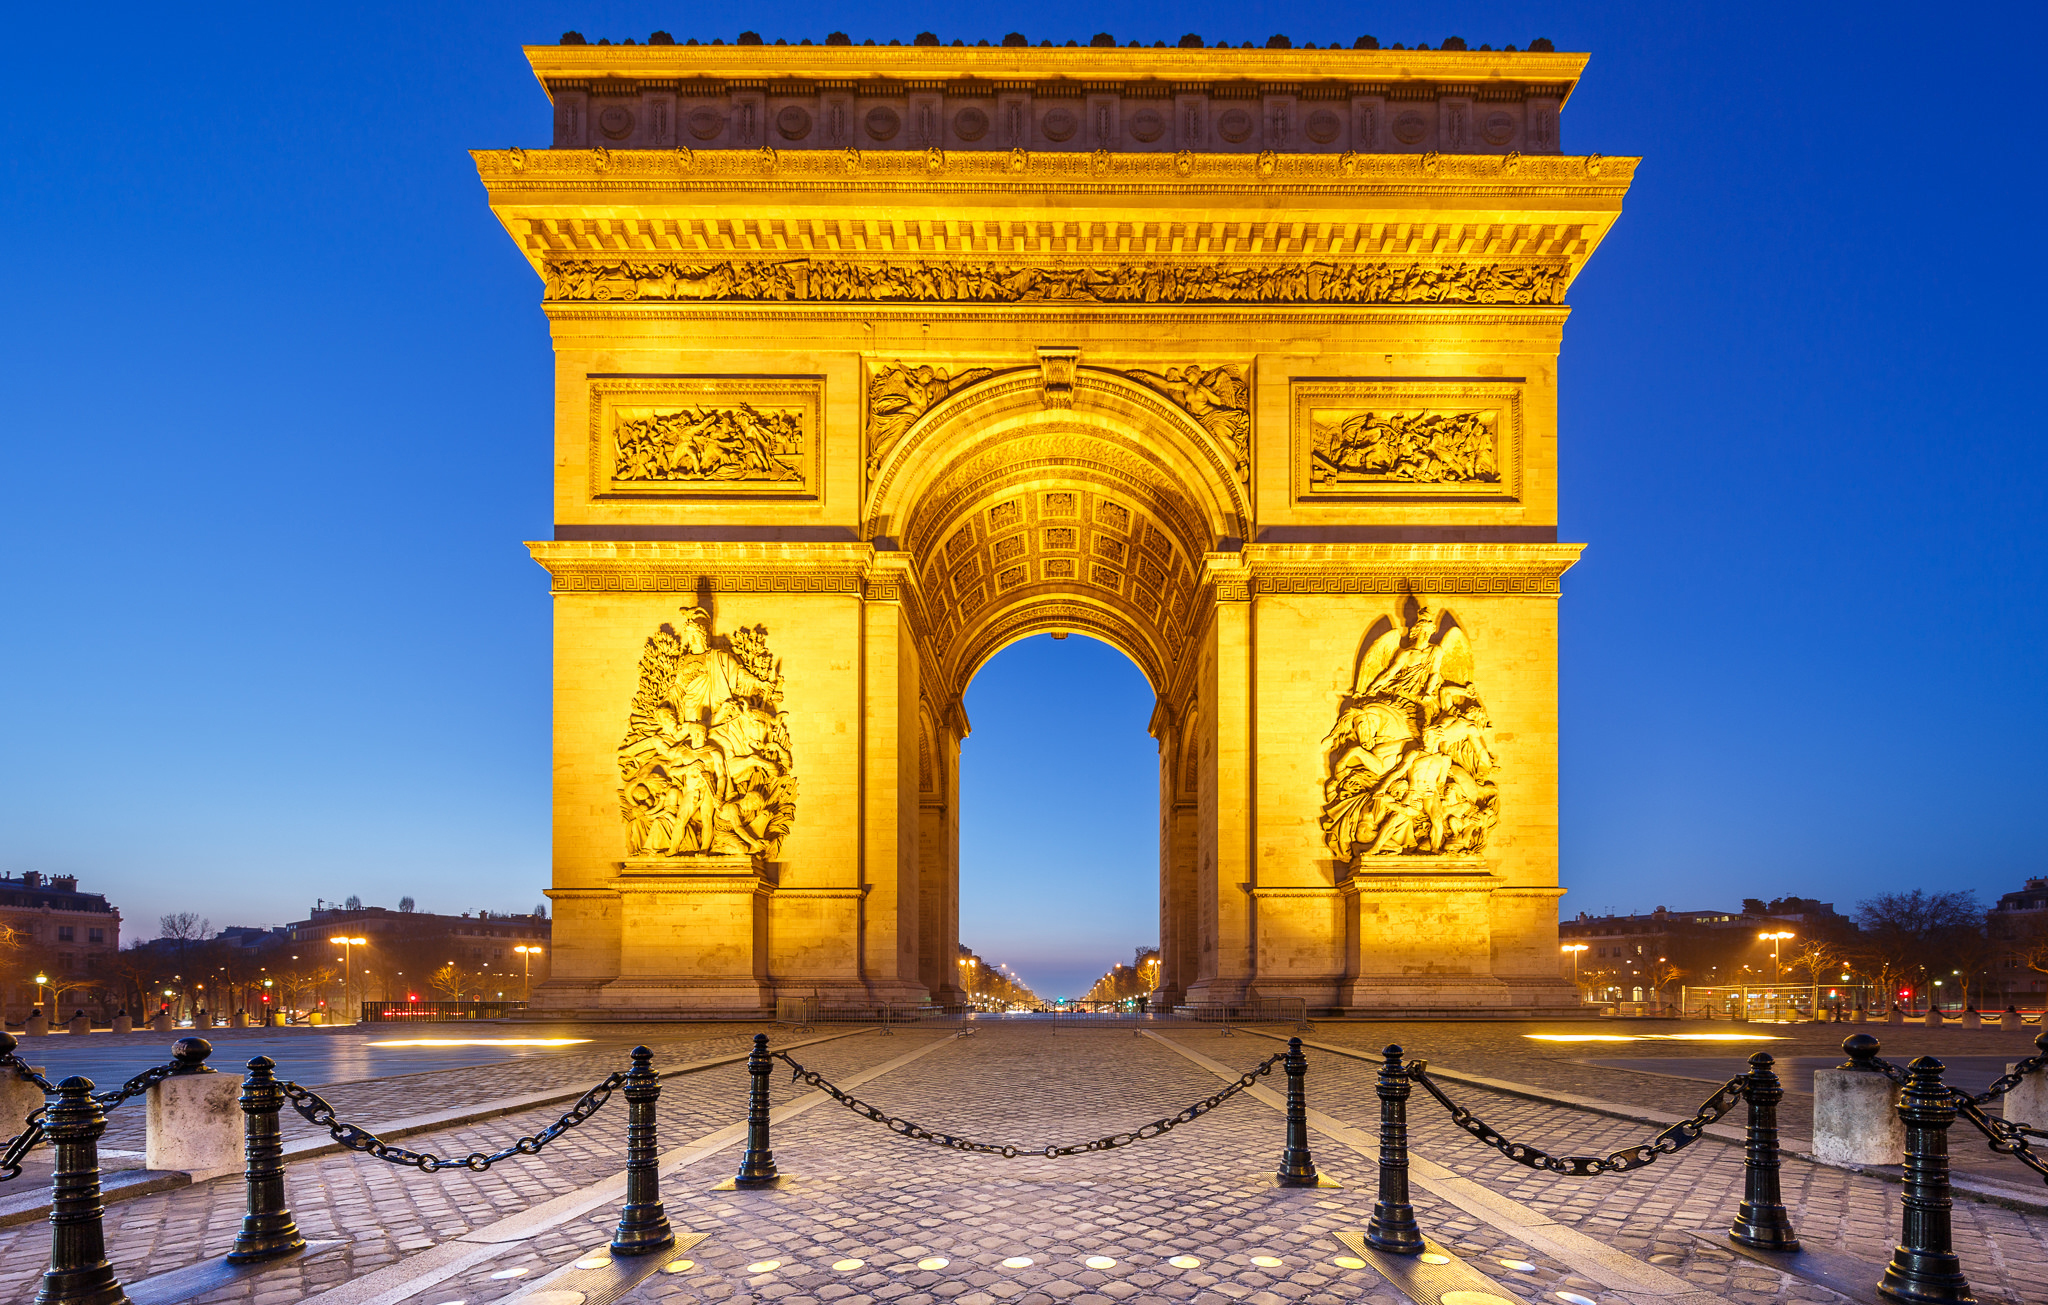 arc de triomphe wallpapers pictures images. Black Bedroom Furniture Sets. Home Design Ideas